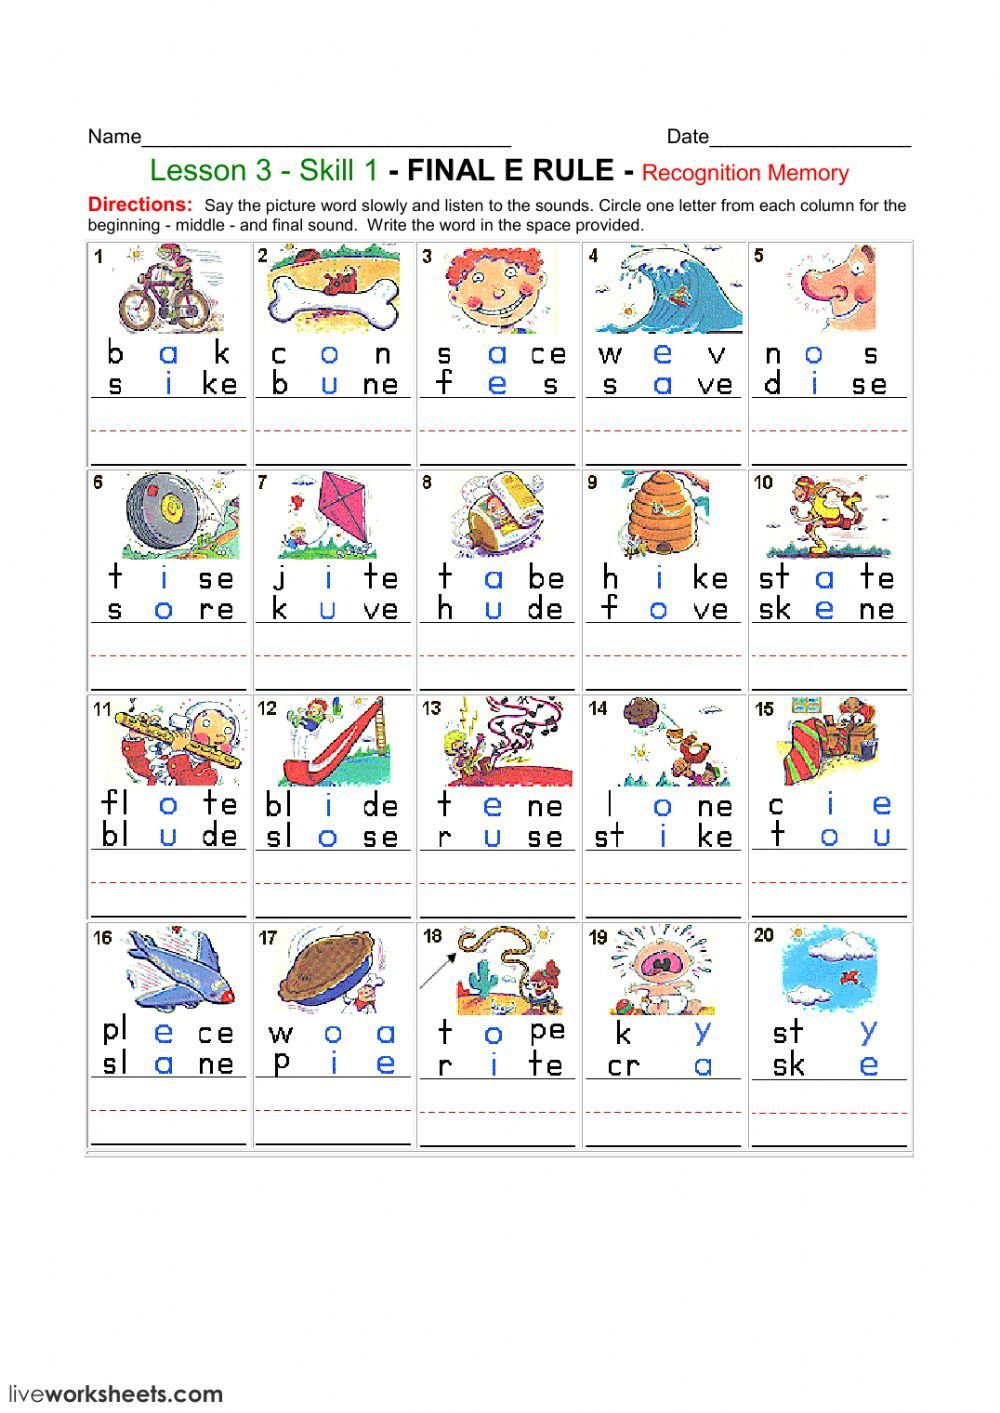 Phonics Interactive And Downloadable Worksheet You Can Do The Exercises Online Or Download The Worksh Equivalent Expressions Worksheets Educational Worksheets